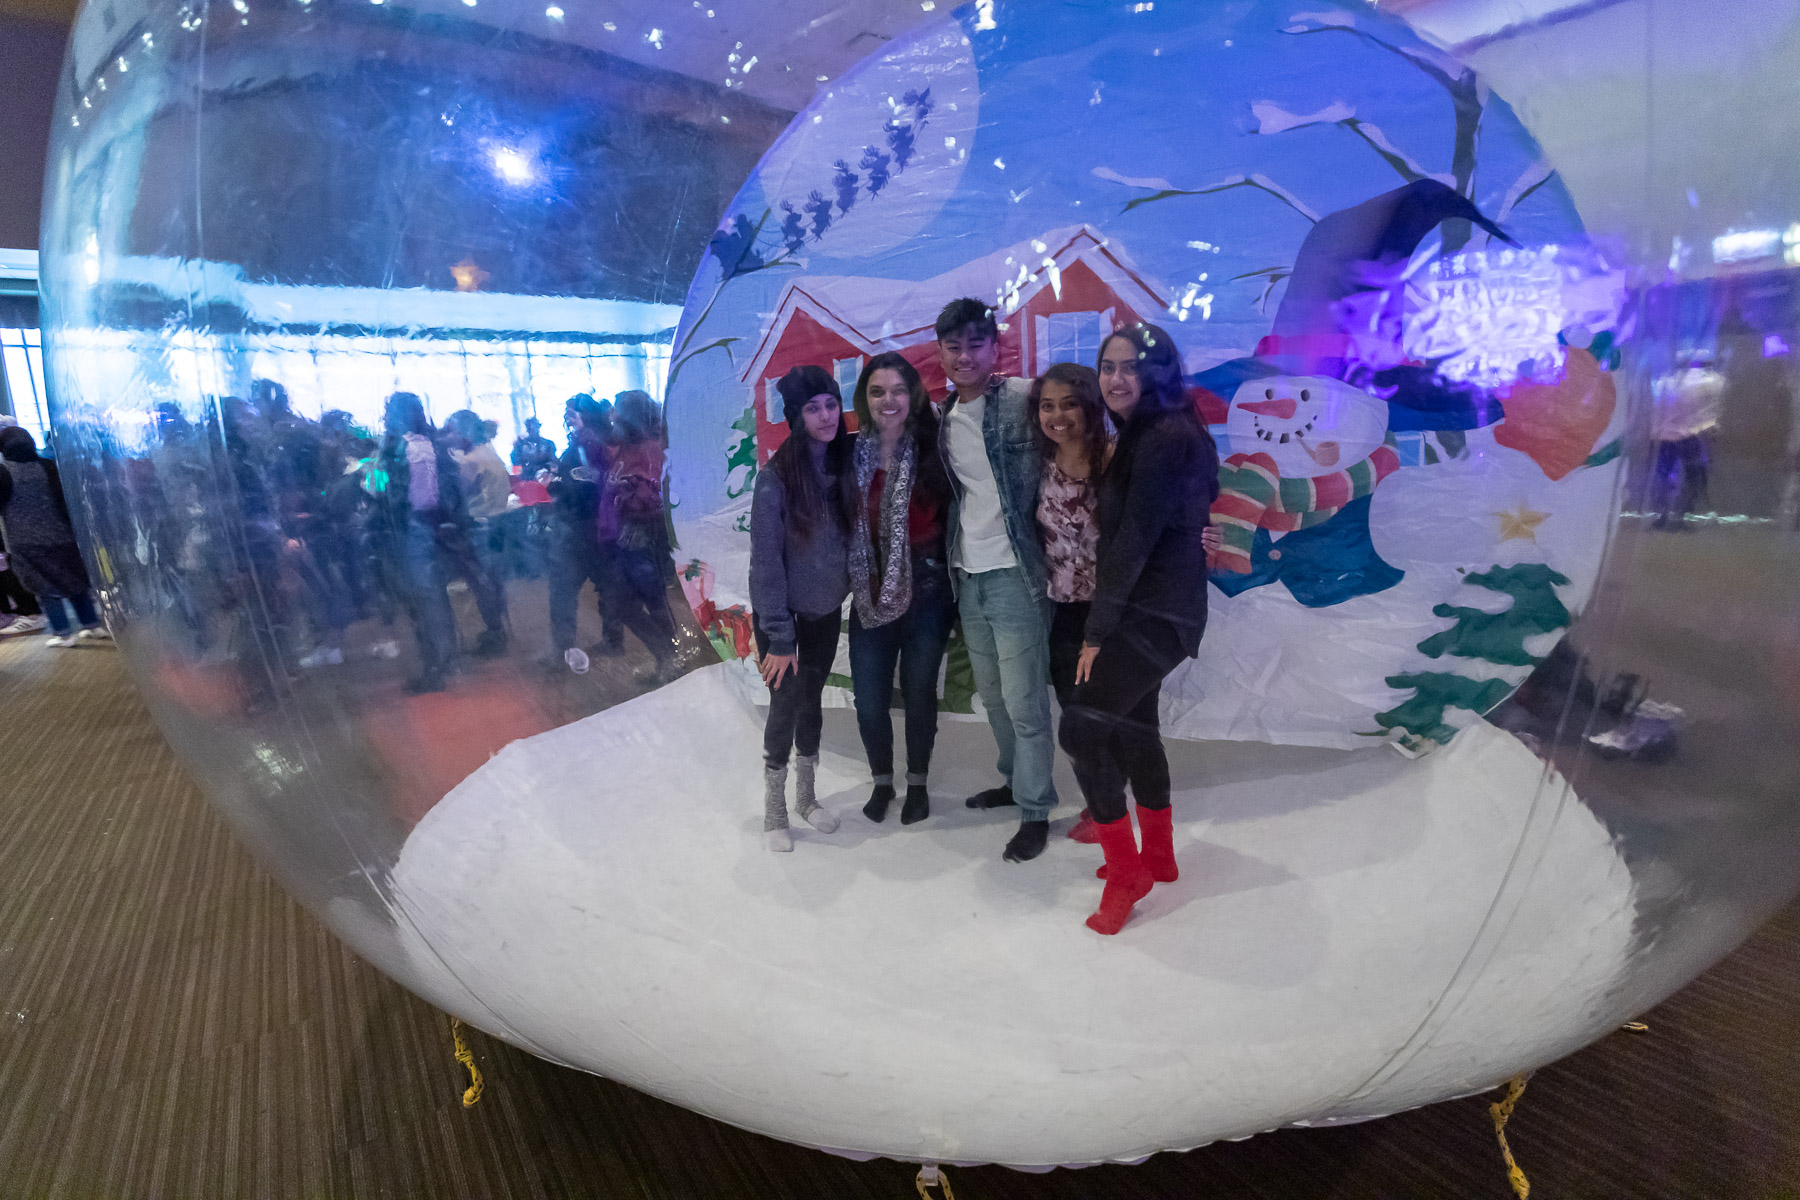 Students take pictures inside an inflatable snow globe before heading out to the Tree Lighting Ceremony. (DePaul University/Jeff Carrion)